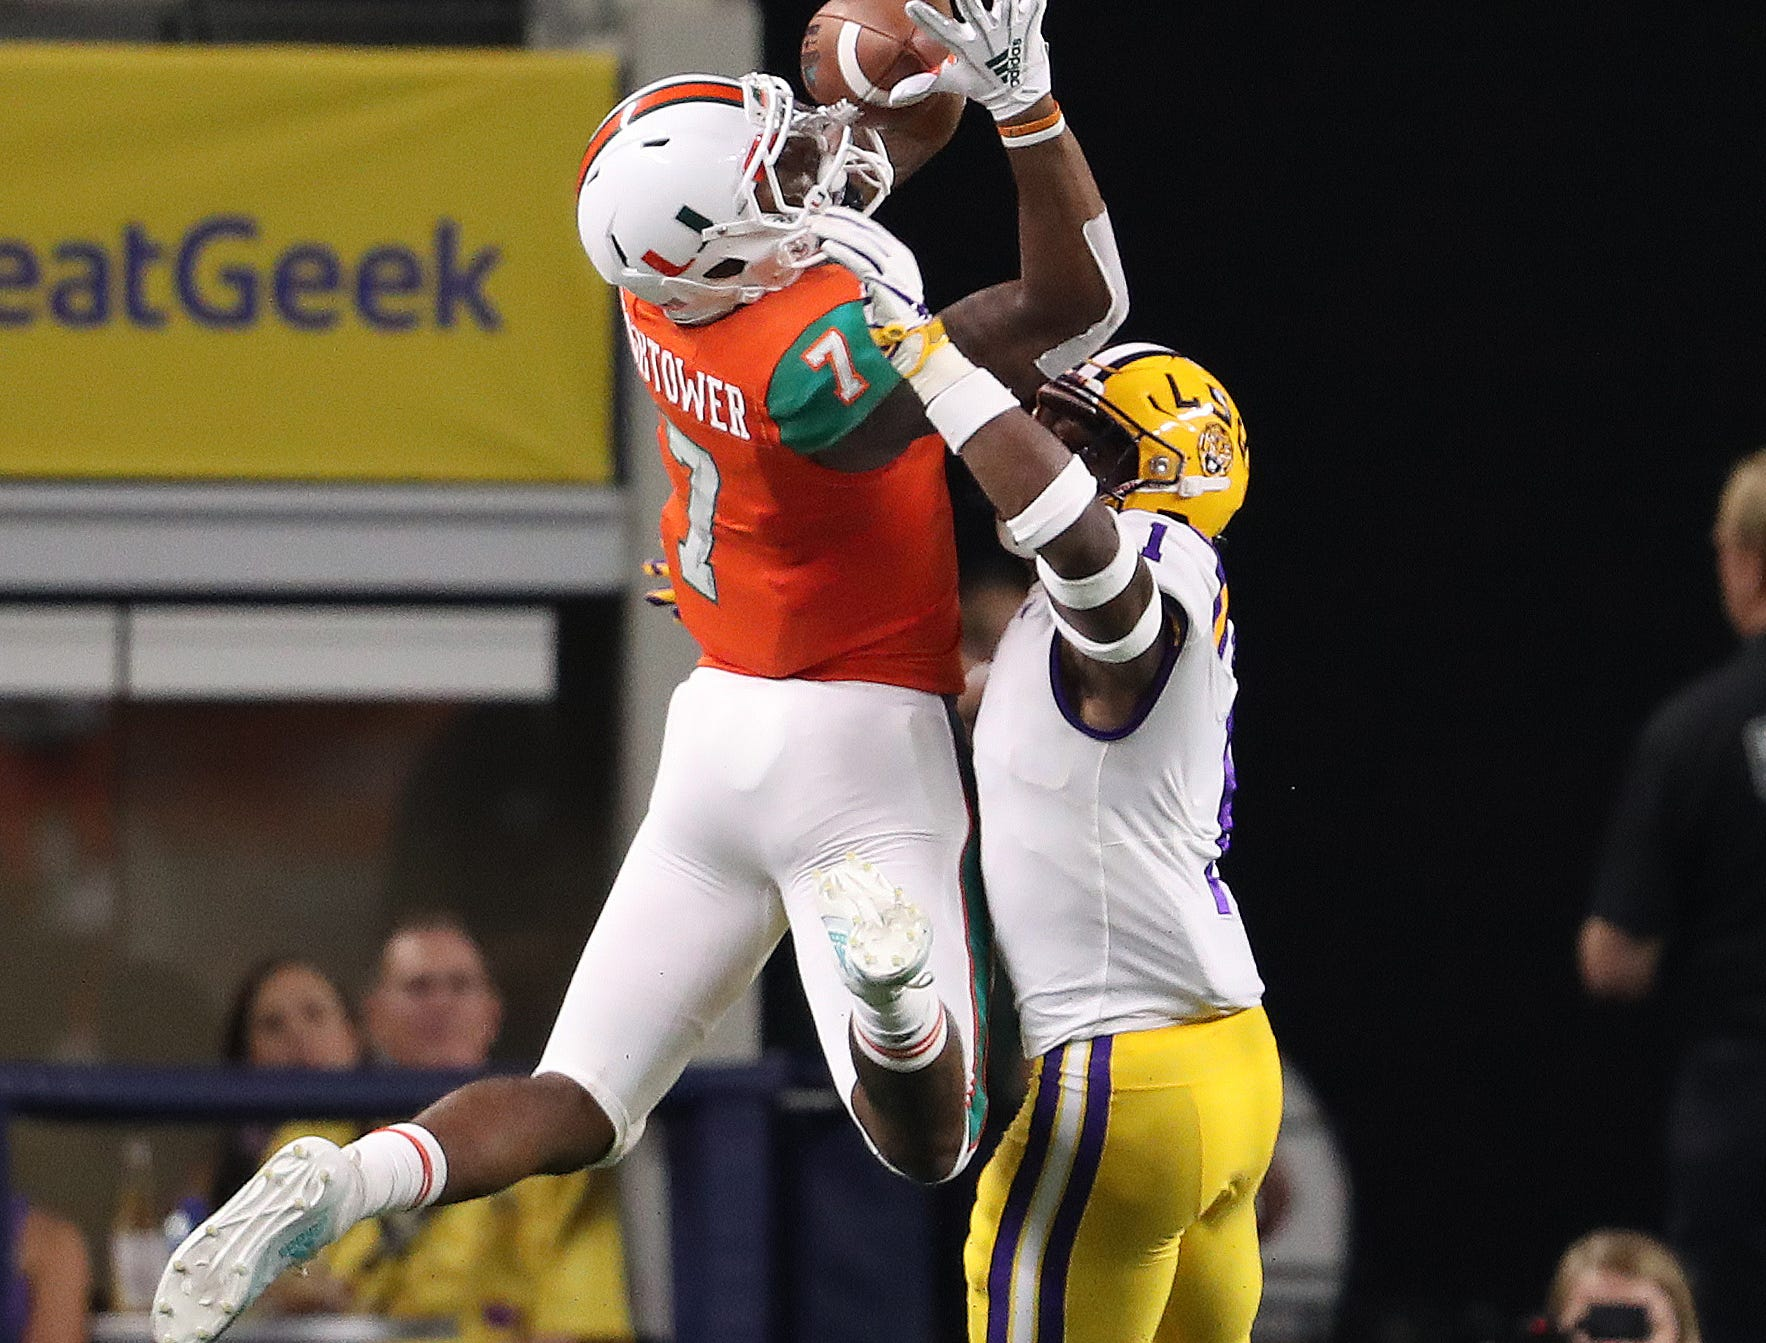 Miami Hurricanes receiver Brian Hightower (7) makes a fourth-quarter touchdown catch against LSU Tigers cornerback Kelvin Joseph (1) at AT&T Stadium.